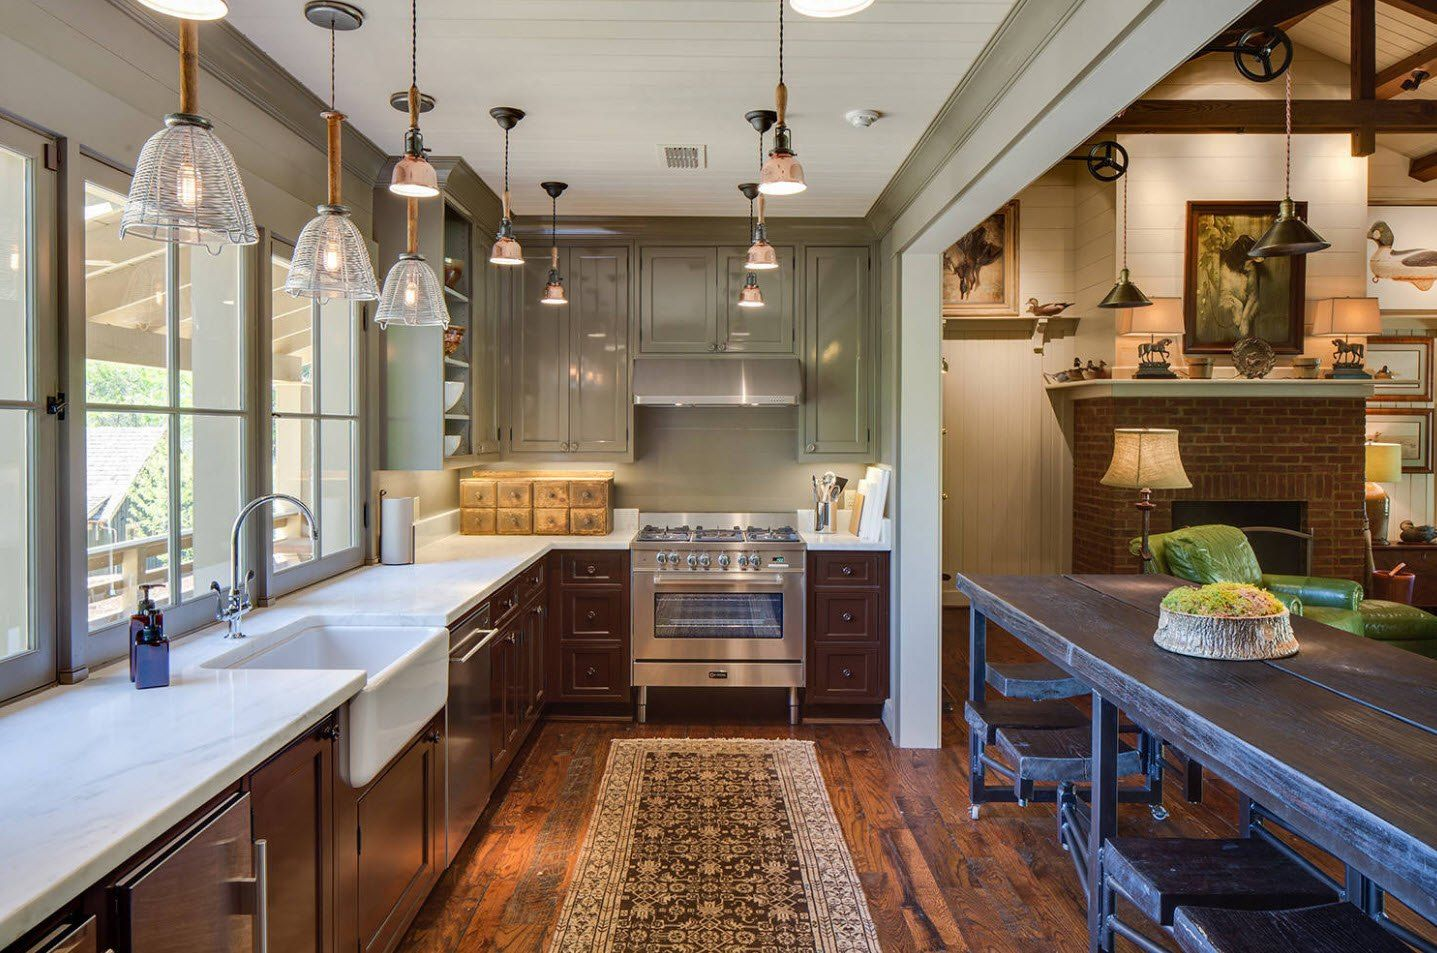 170 Square Feet Kitchen Design Ideas with Photos. Homey rug at the gallet kitchen in Classic style